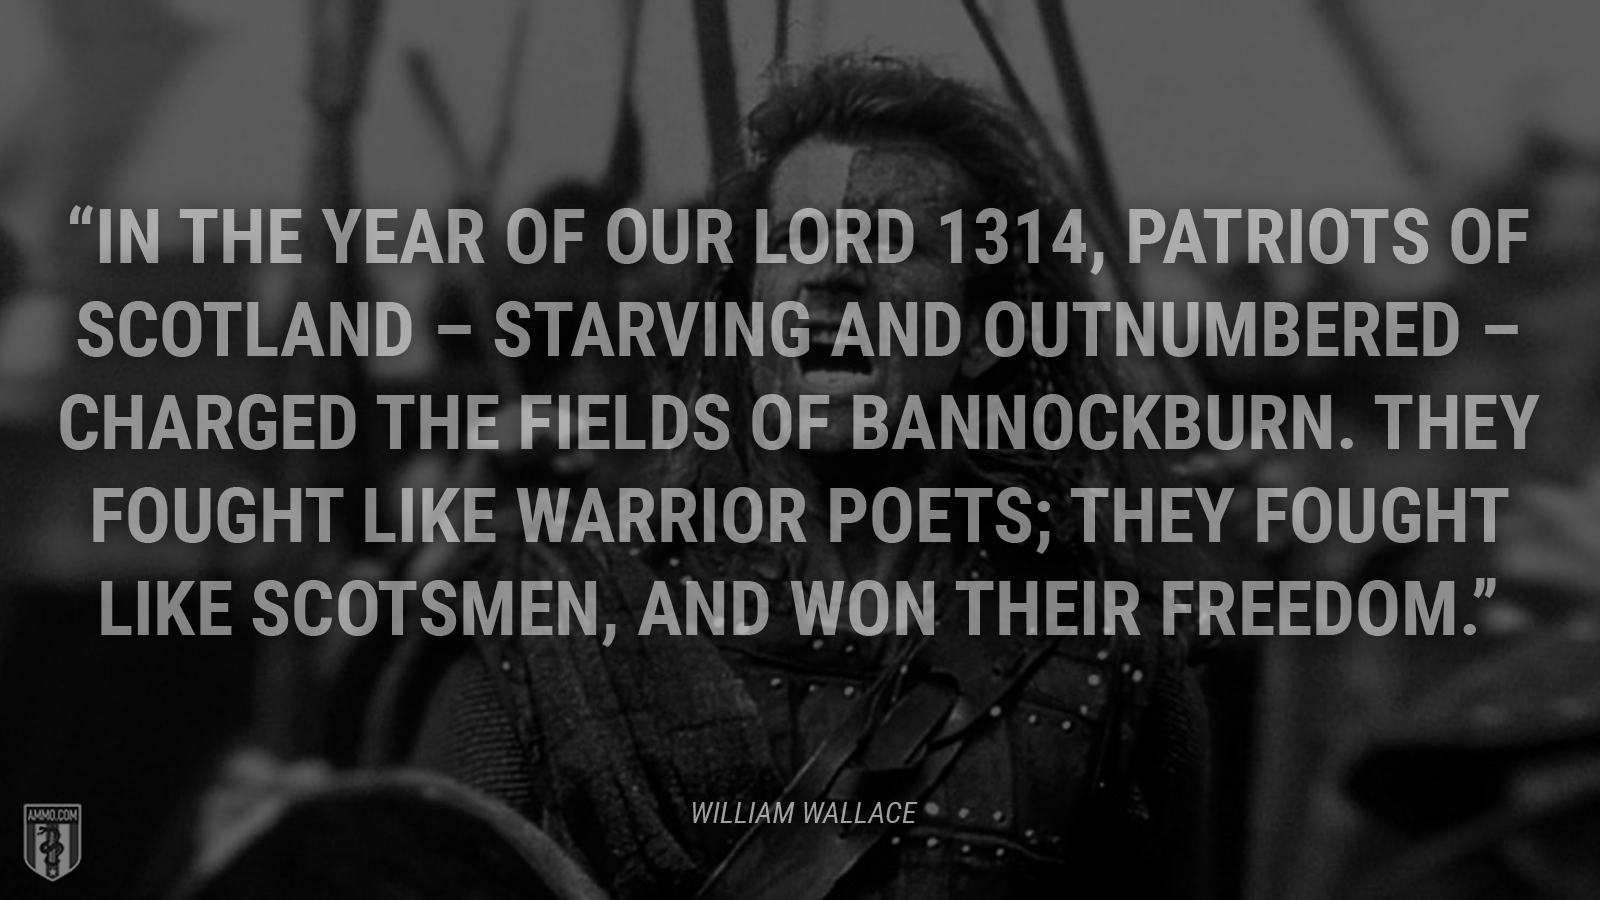 """In the Year of our Lord 1314, patriots of Scotland – starving and outnumbered – charged the fields of Bannockburn. They fought like warrior poets; they fought like Scotsmen, and won their freedom."" - William Wallace"